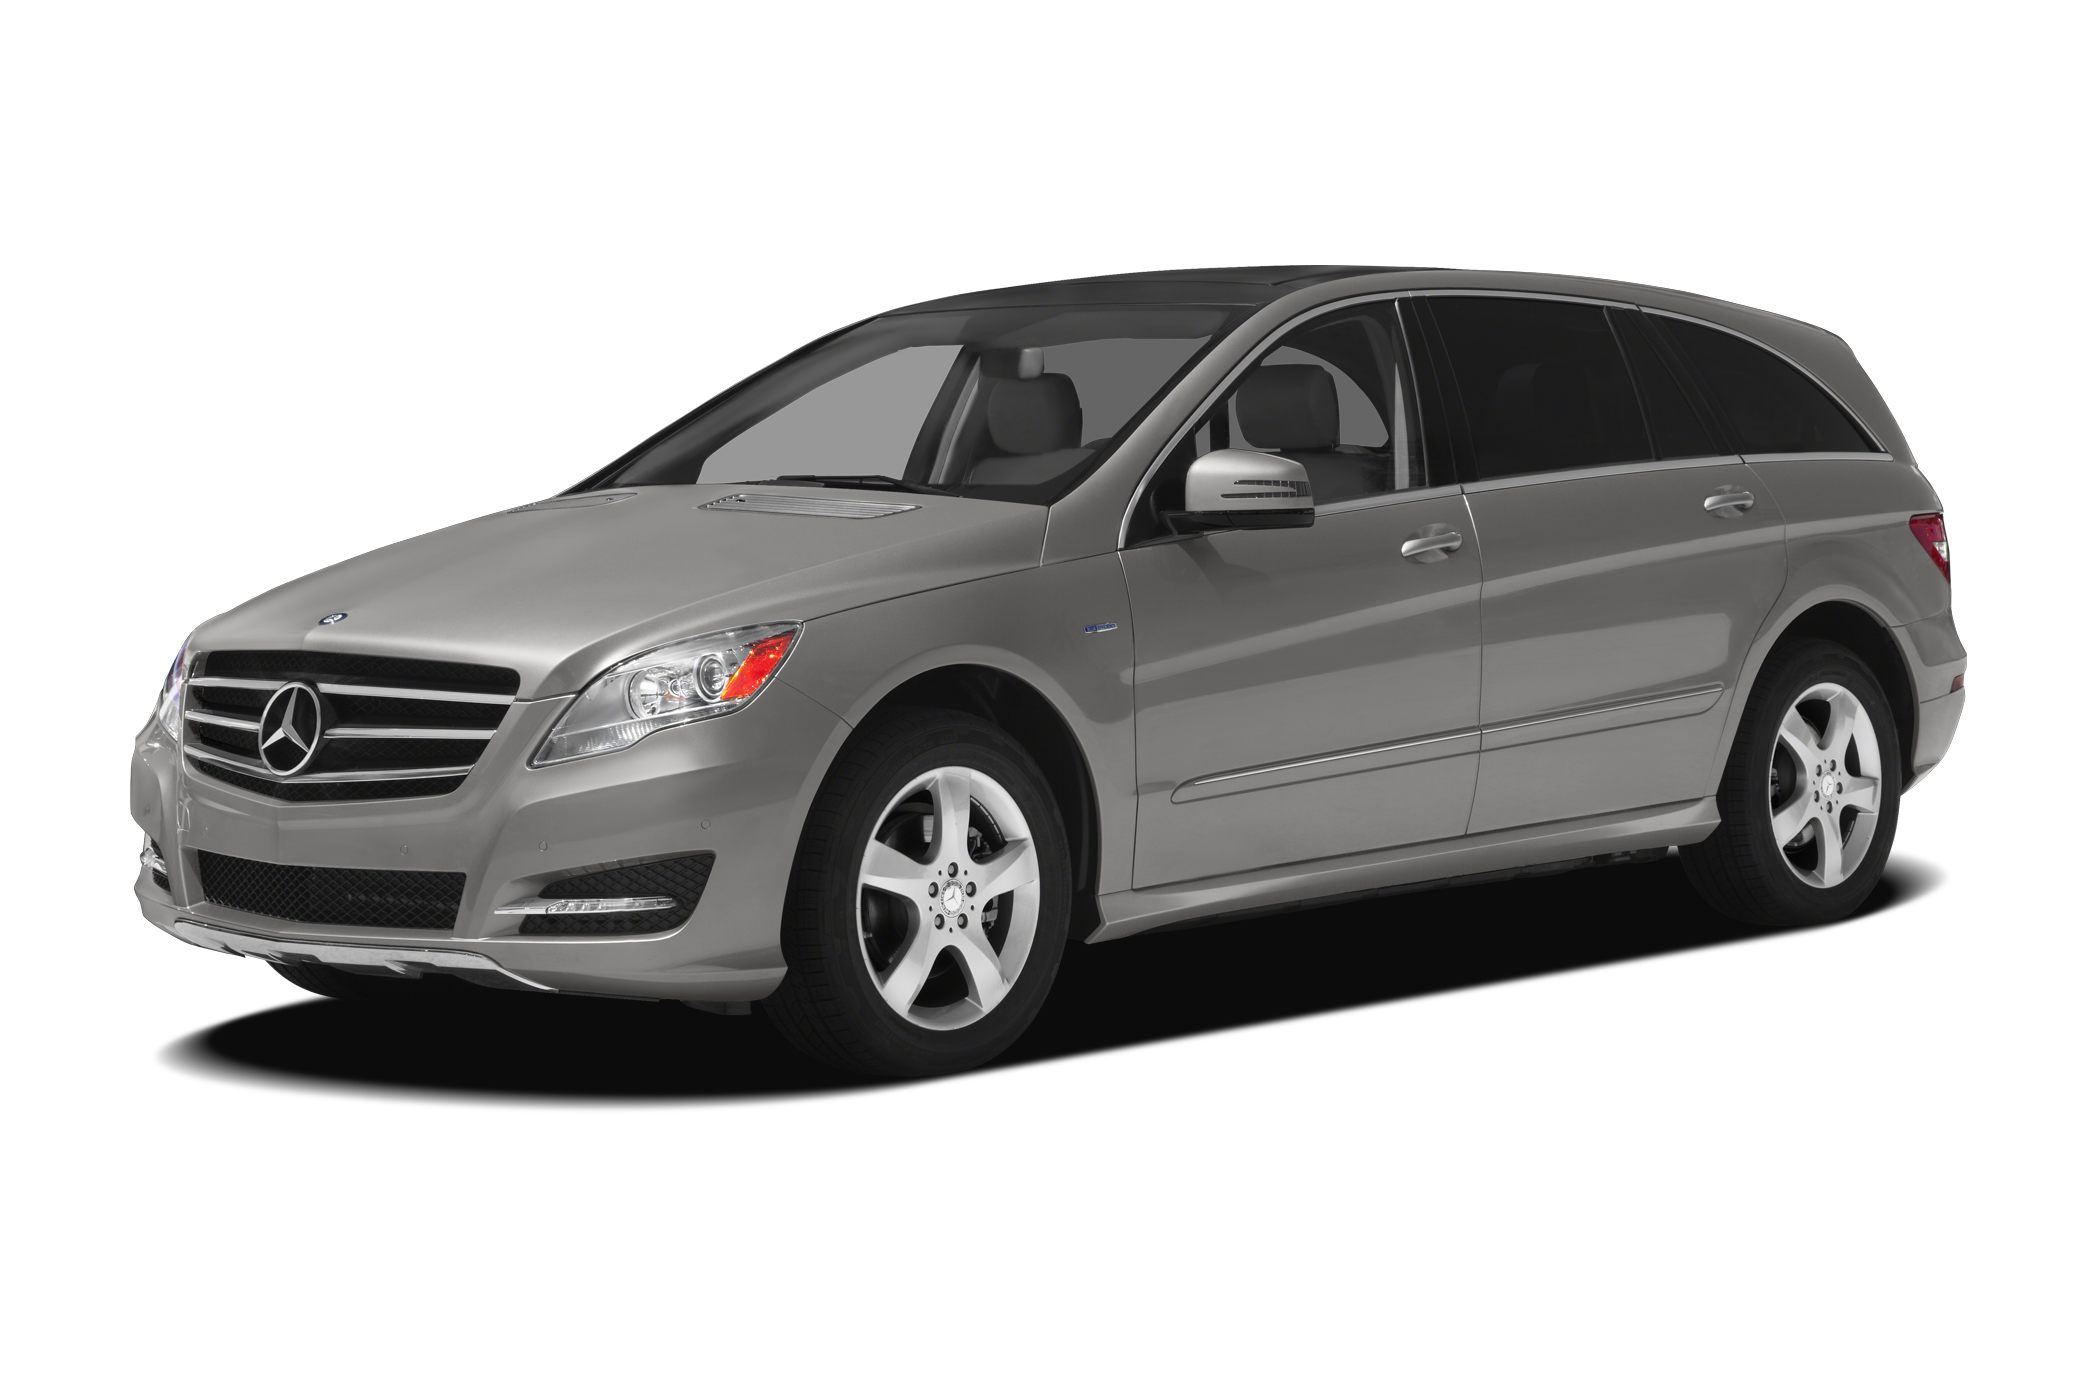 2011 Mercedes-Benz R-Class R350 4MATIC Wagon for sale in Manassas for $32,777 with 49,886 miles.